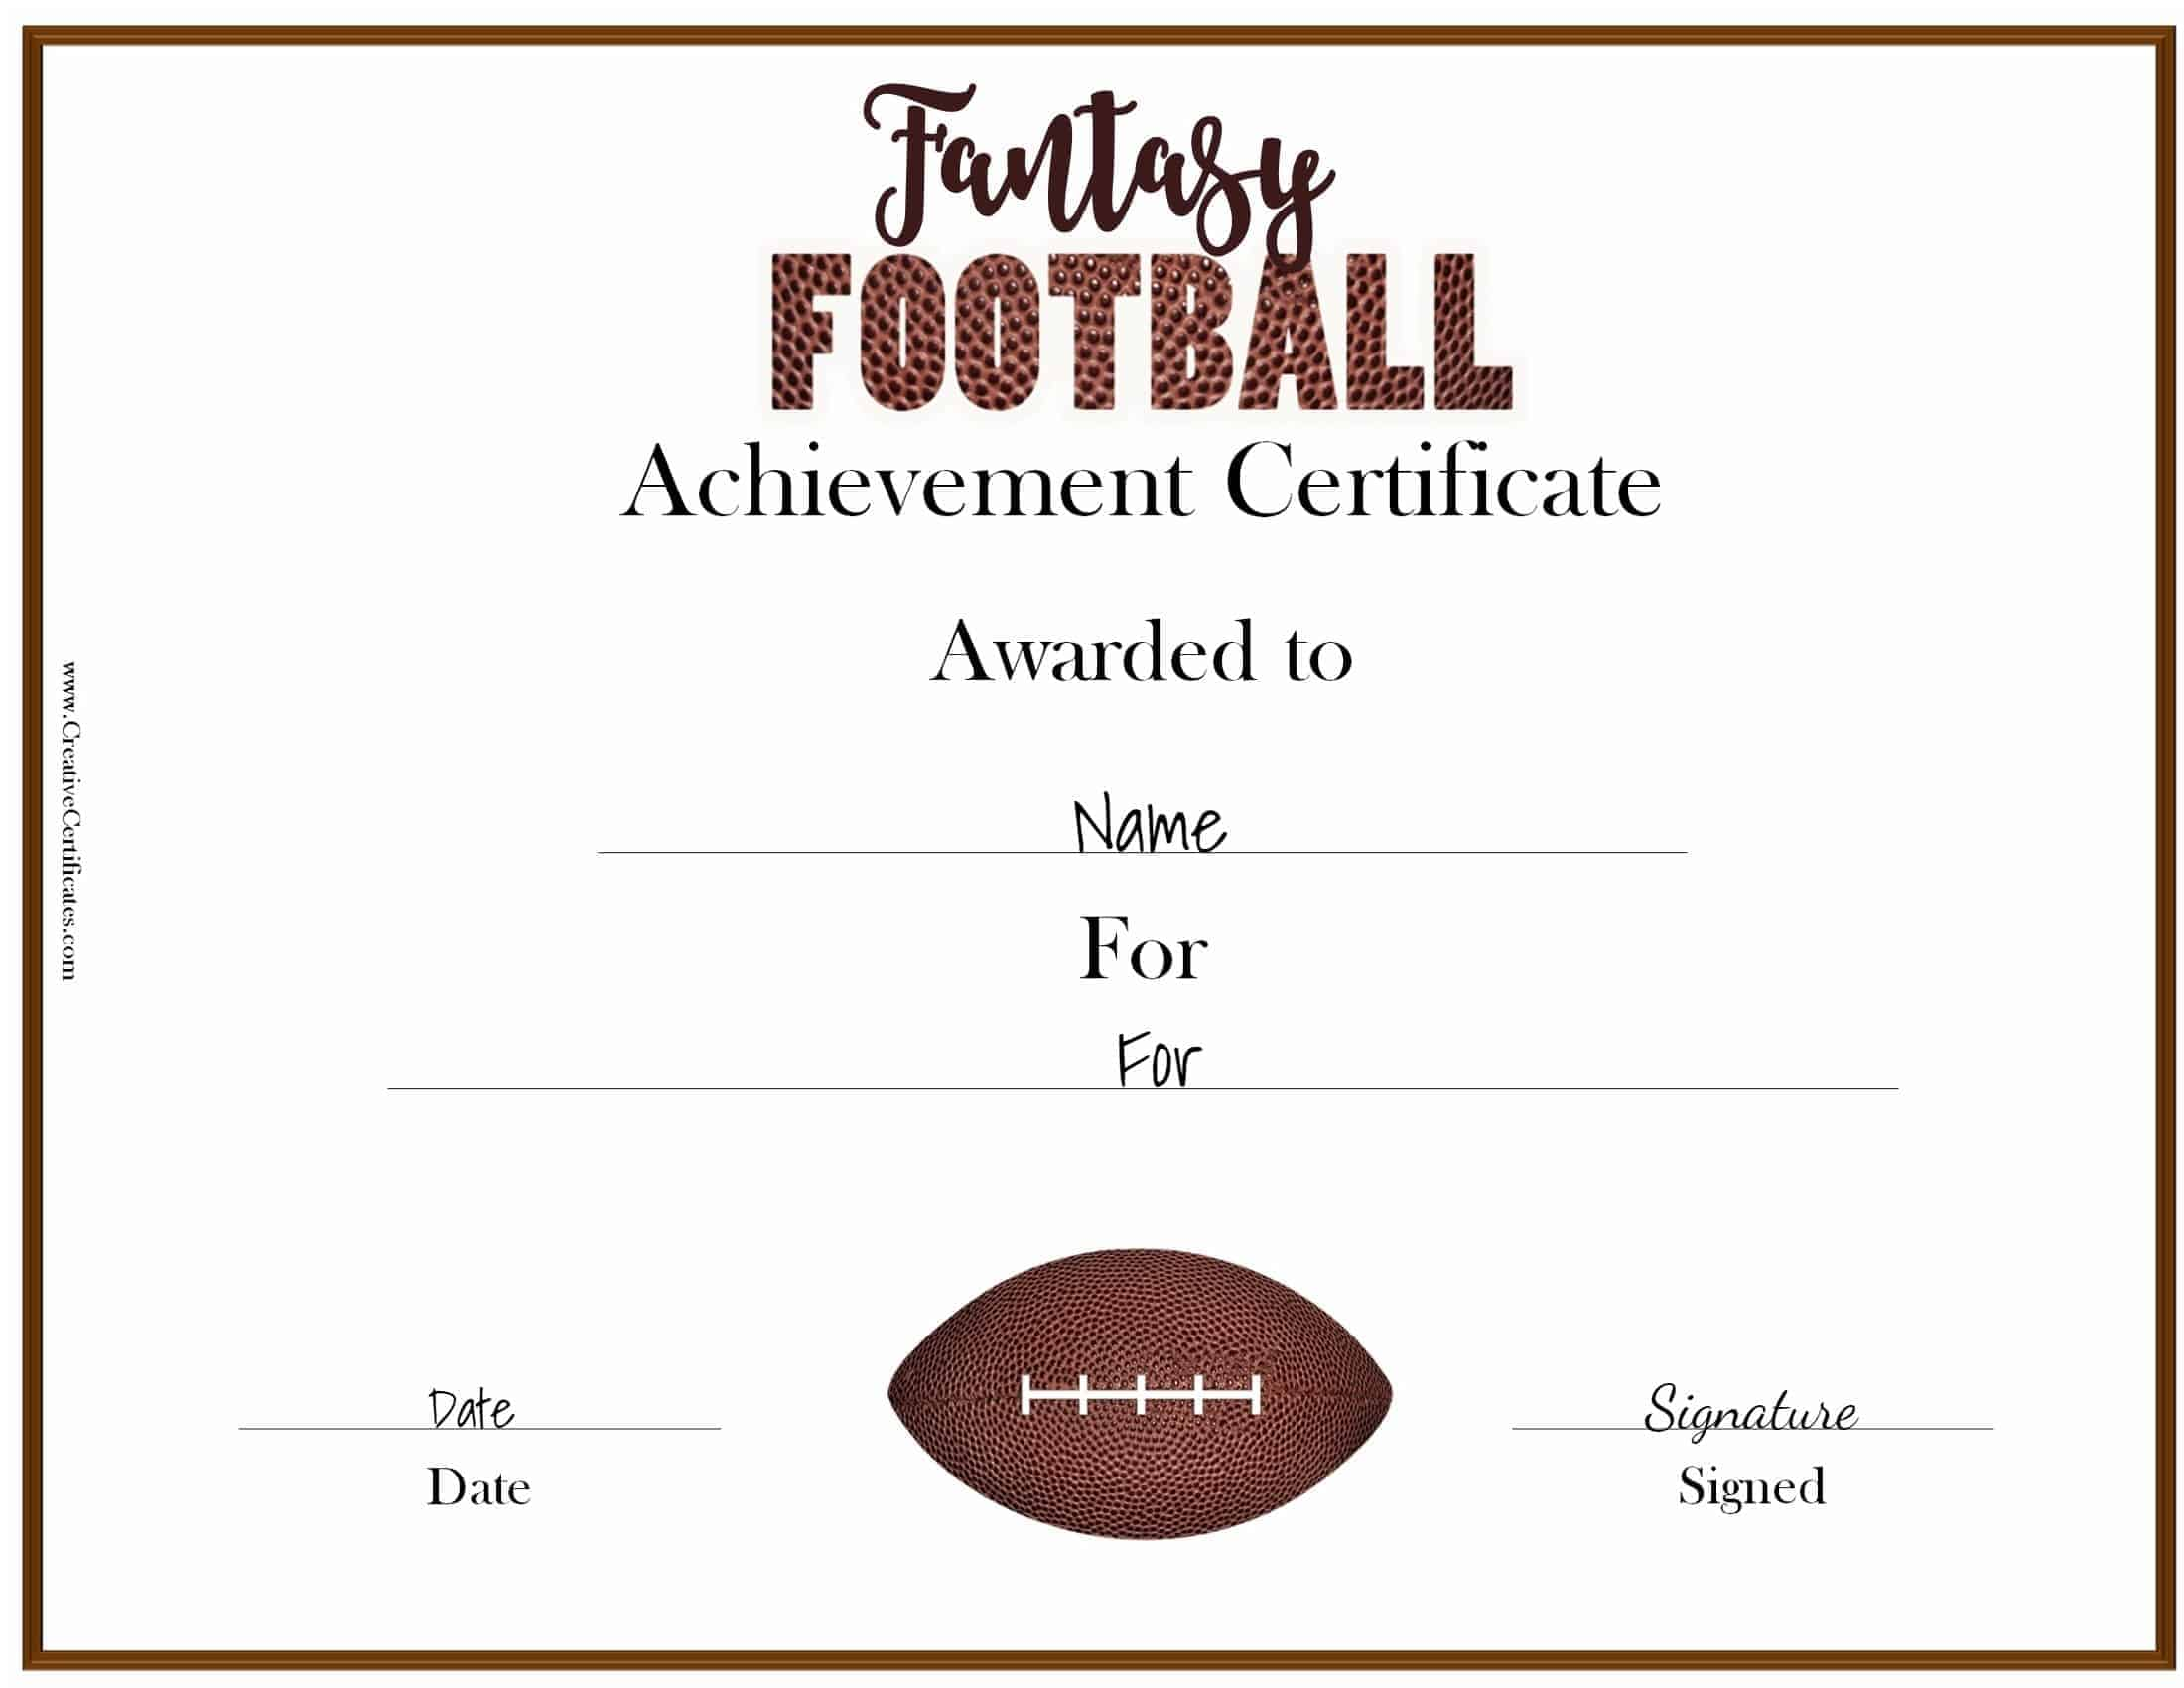 Fantasy football awards fantasy football award yelopaper